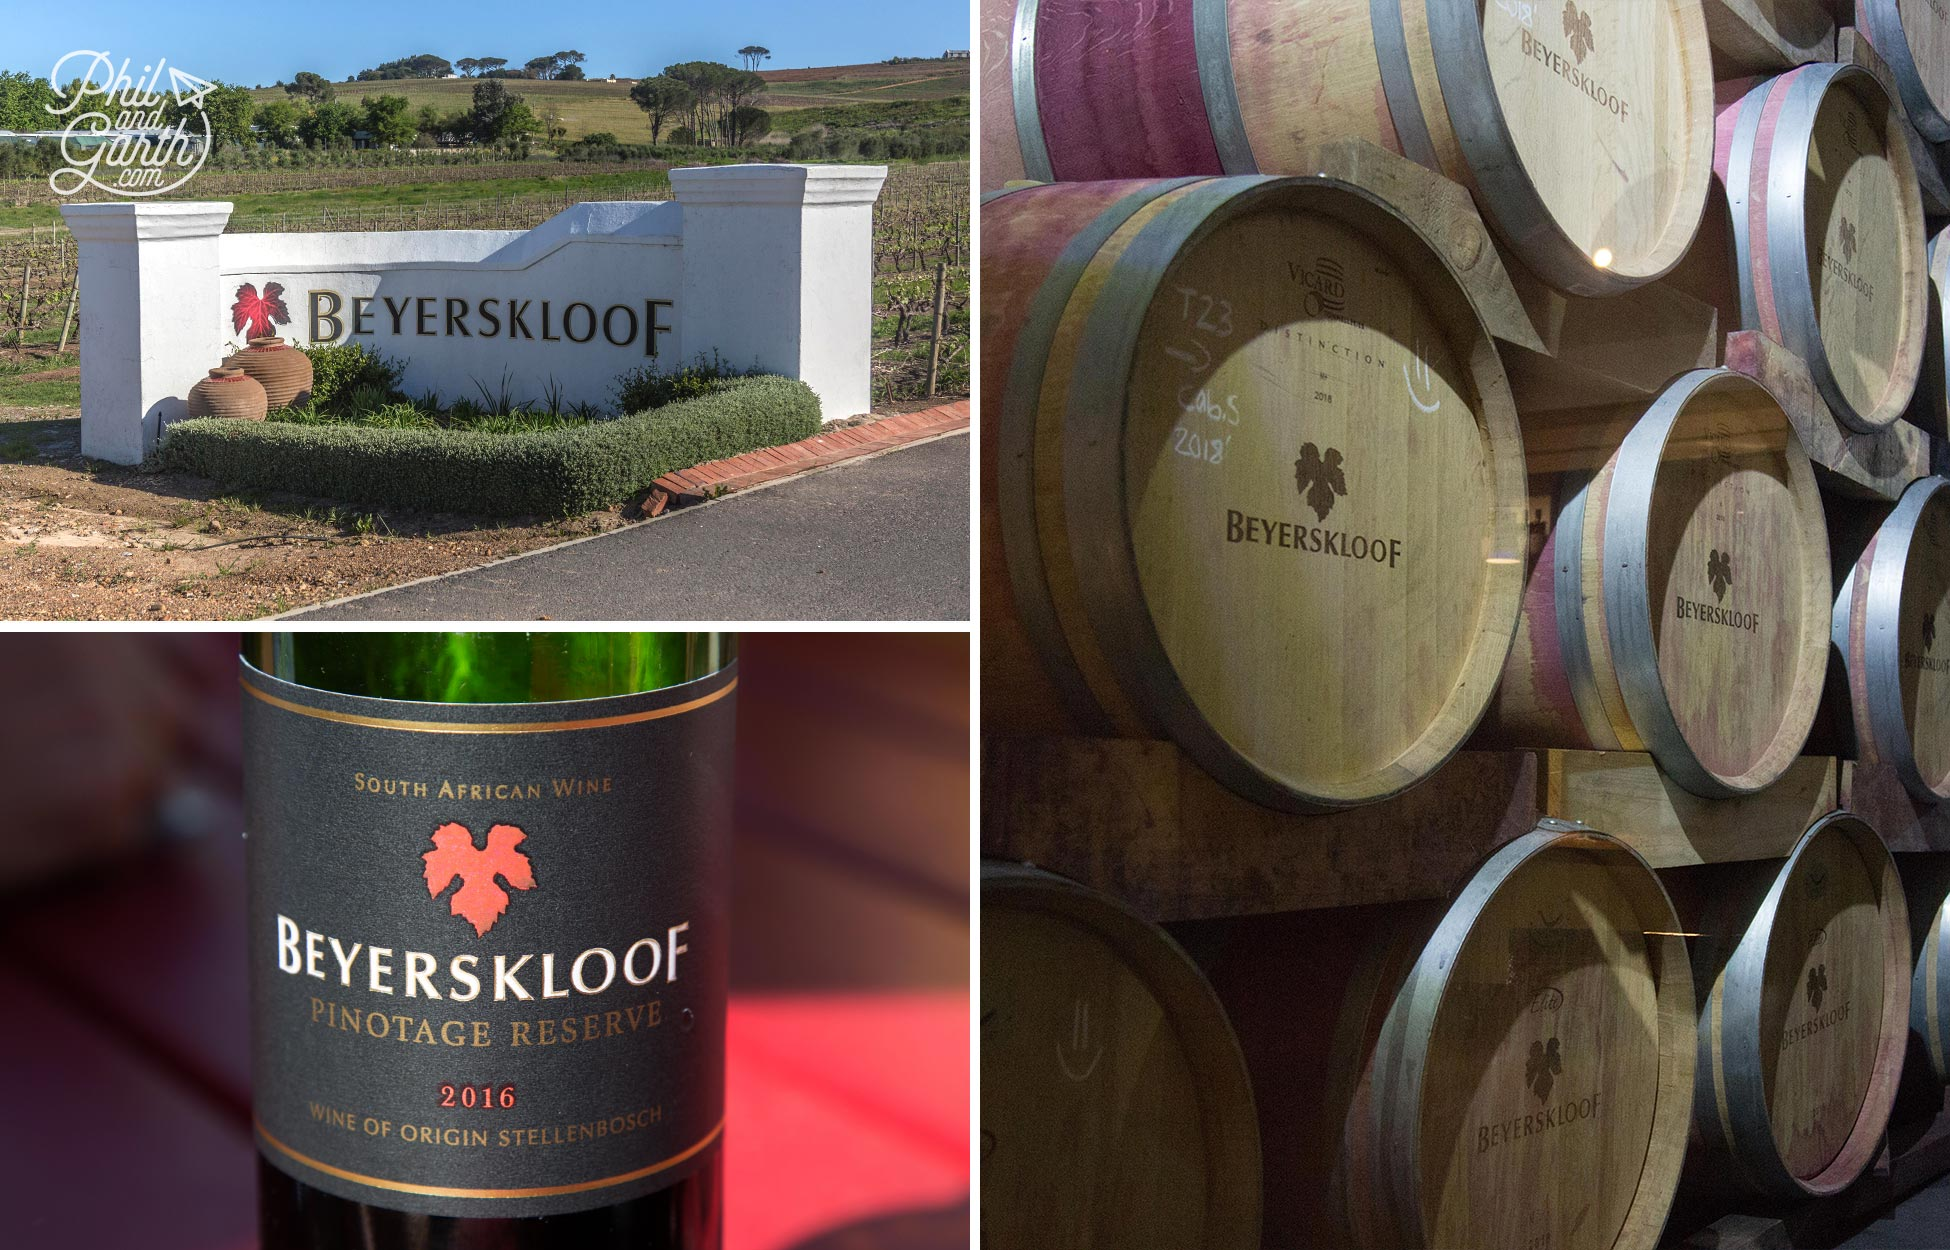 Beyerskloof wine estate